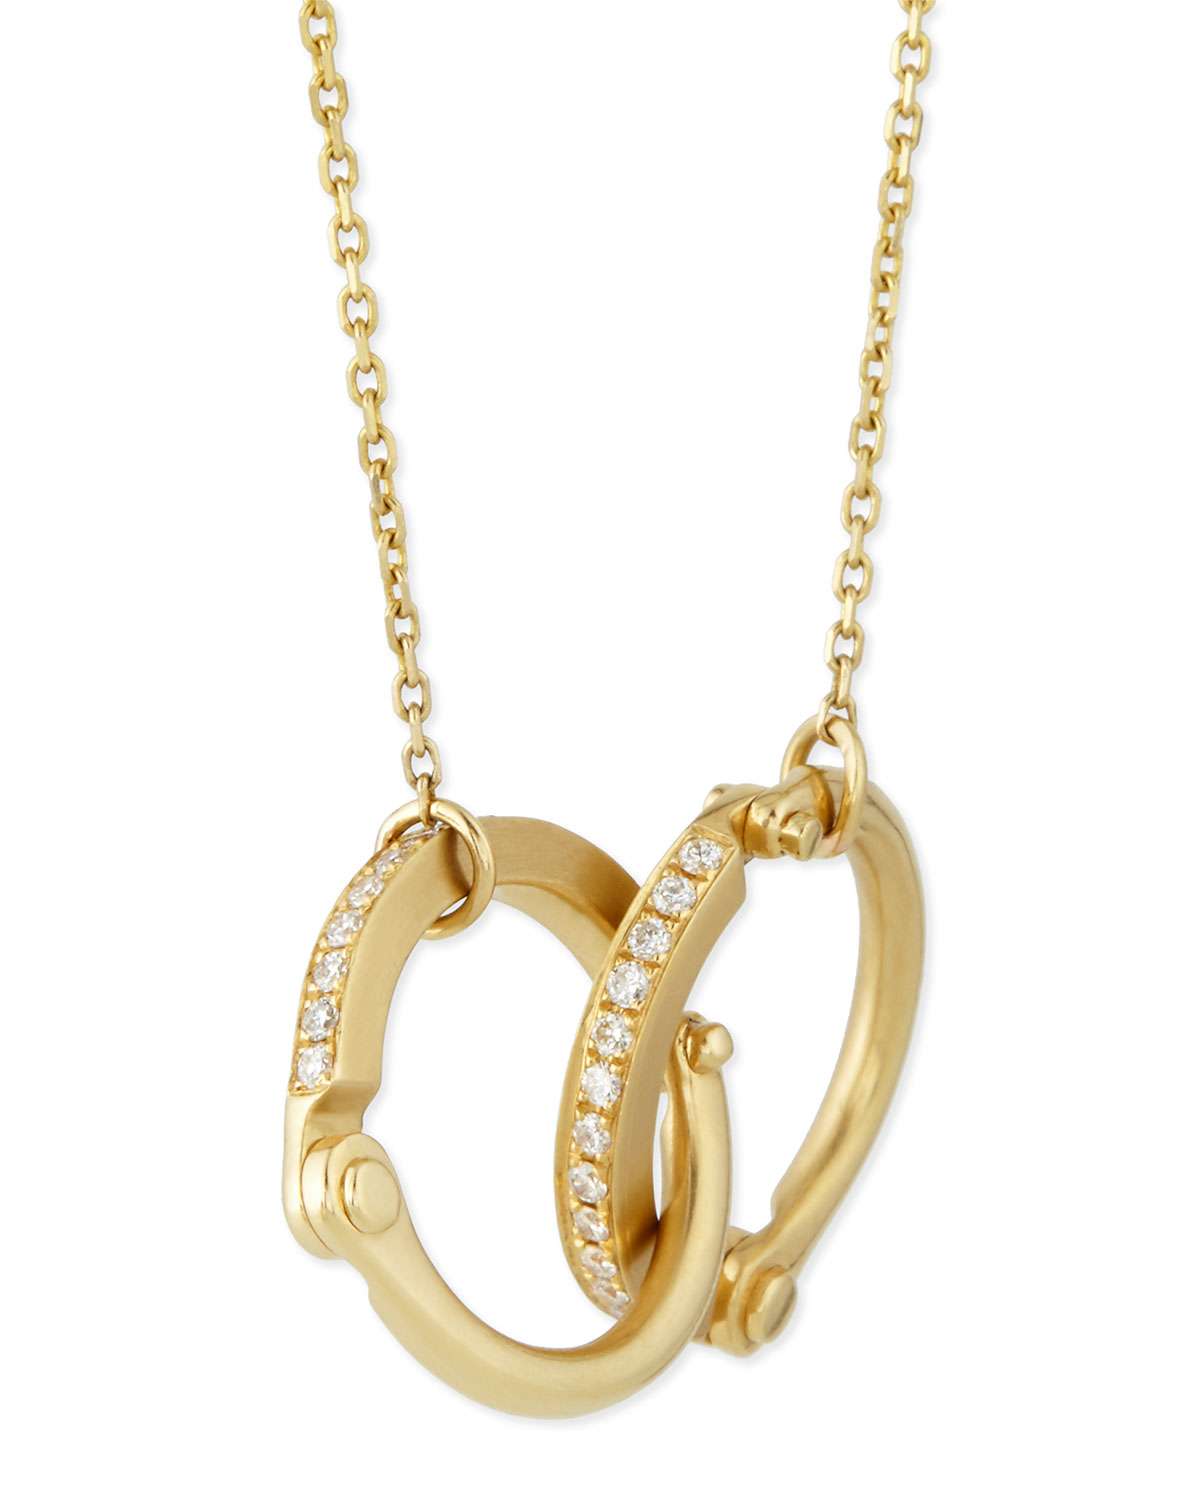 borgioni 18k yellow gold pav 233 handcuff necklace in